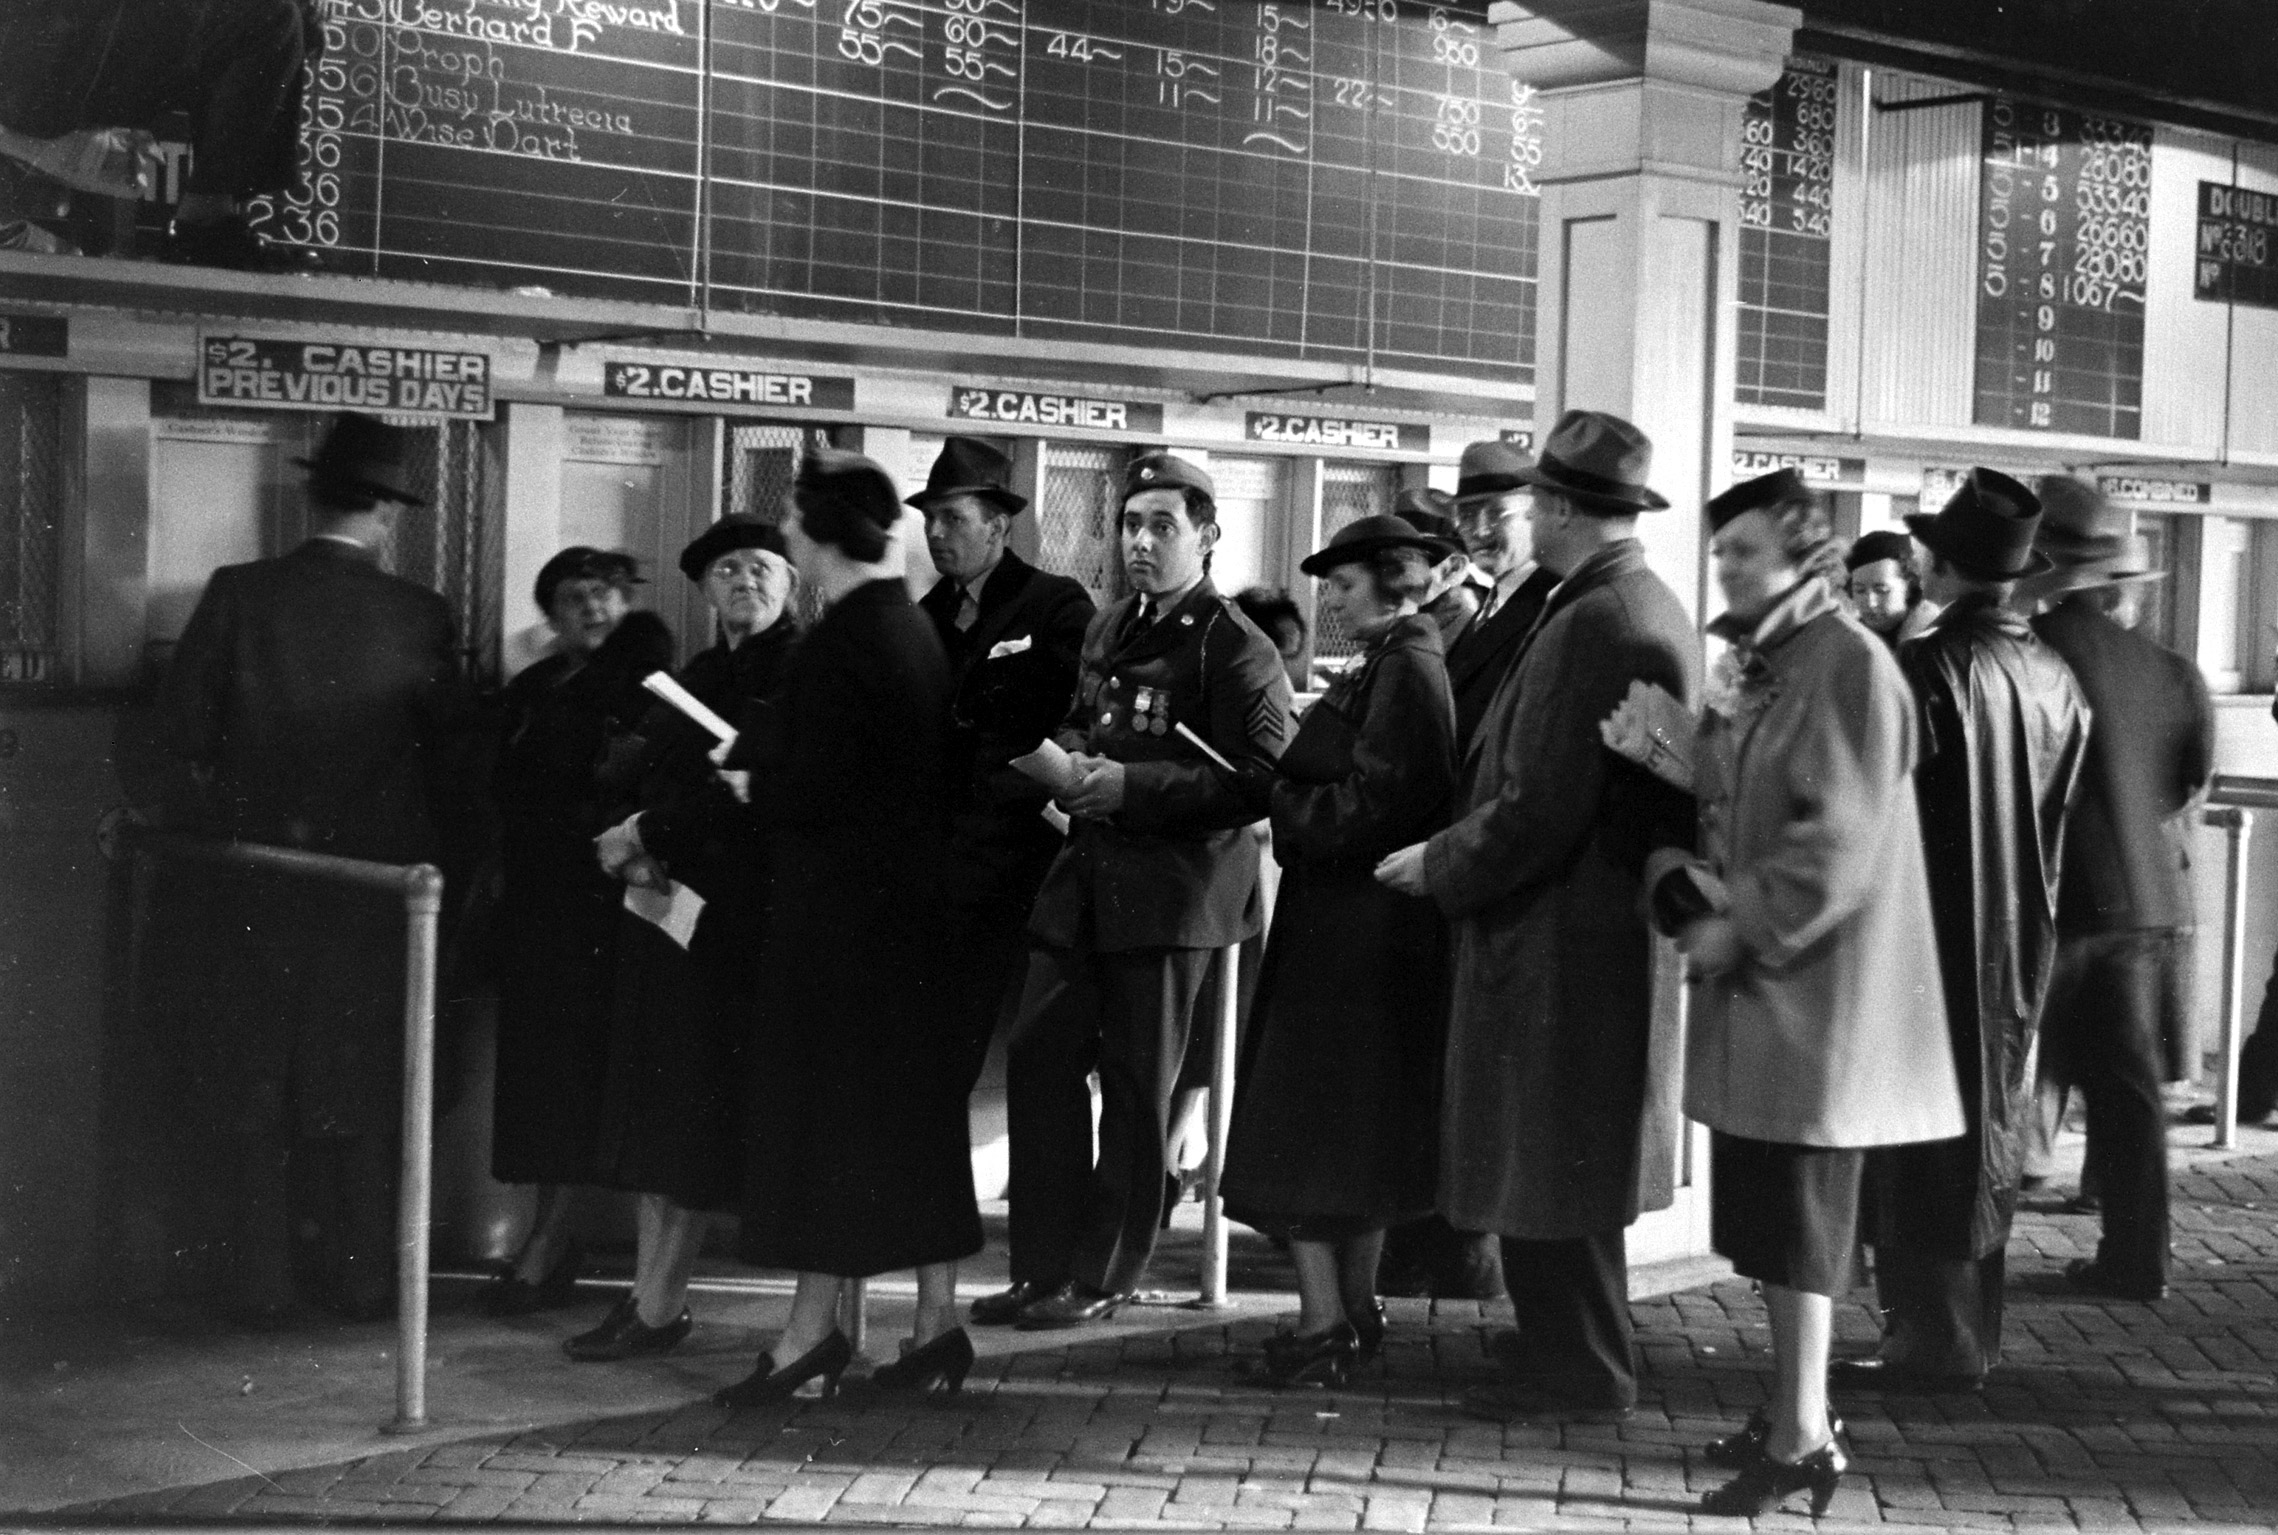 Crowds at the cashier stand, 1937 Kentucky Derby.